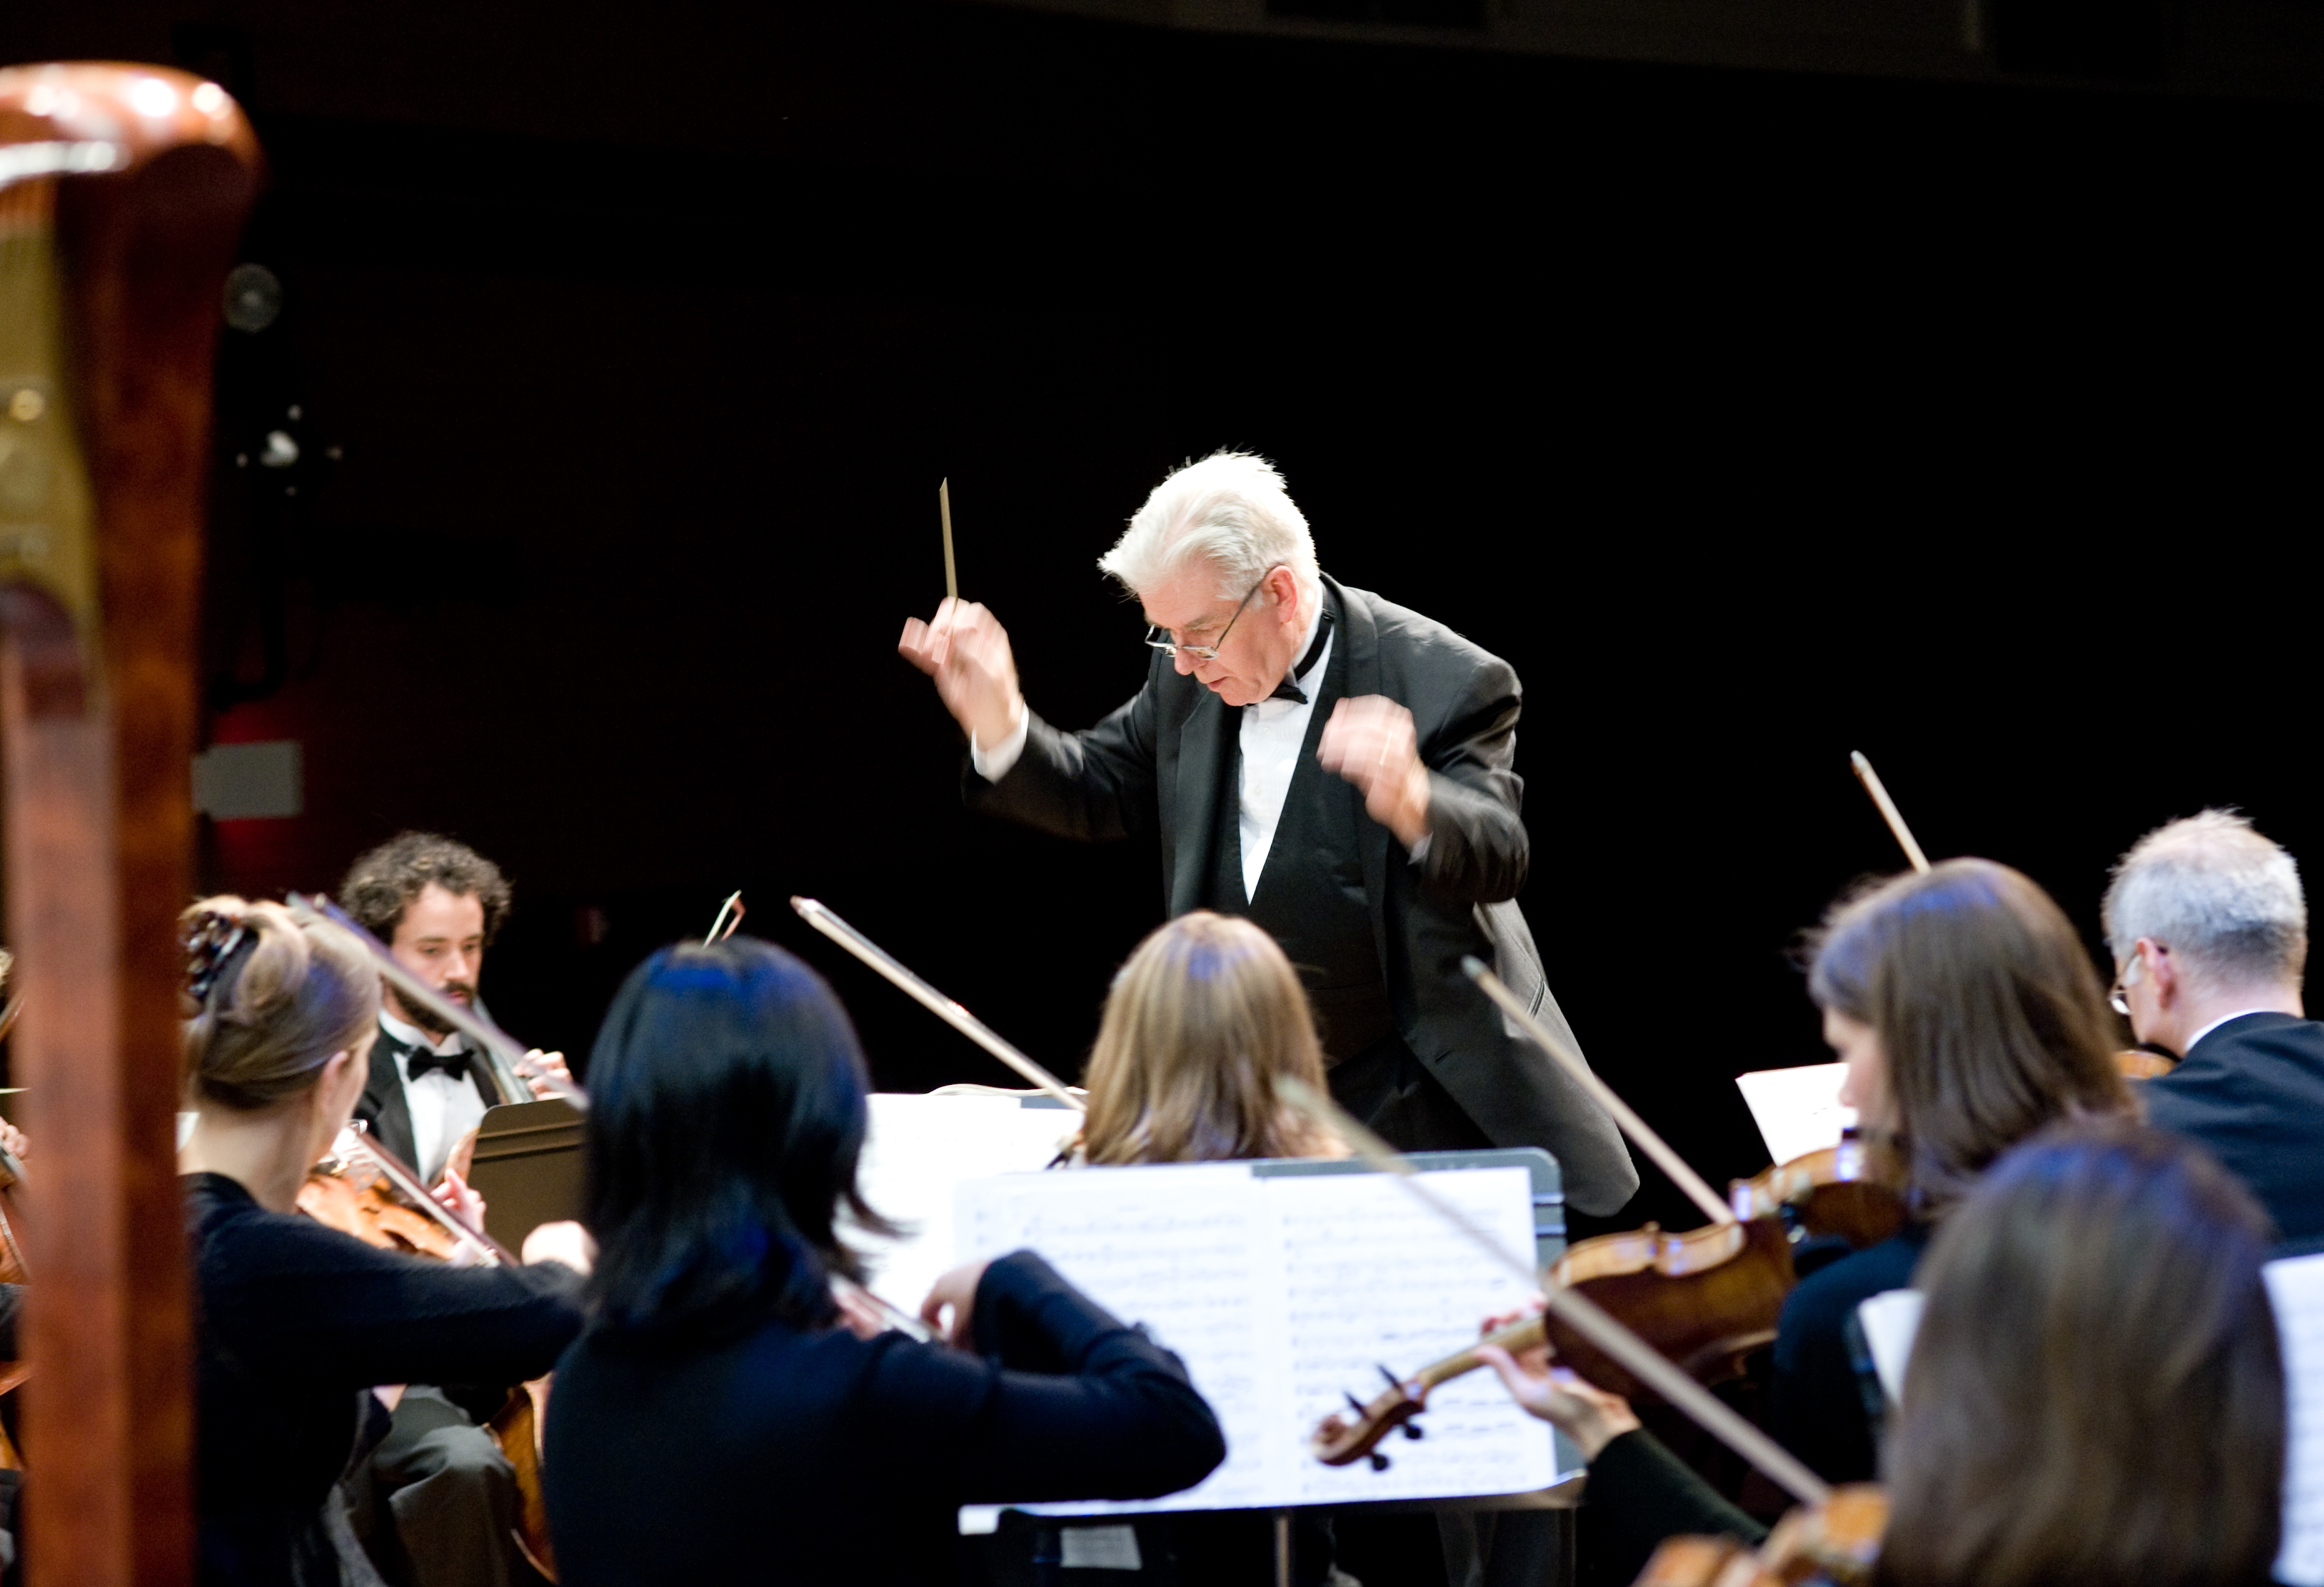 Johns Creek Symphony Orchestra to perform at Summer Concert Aug. 26